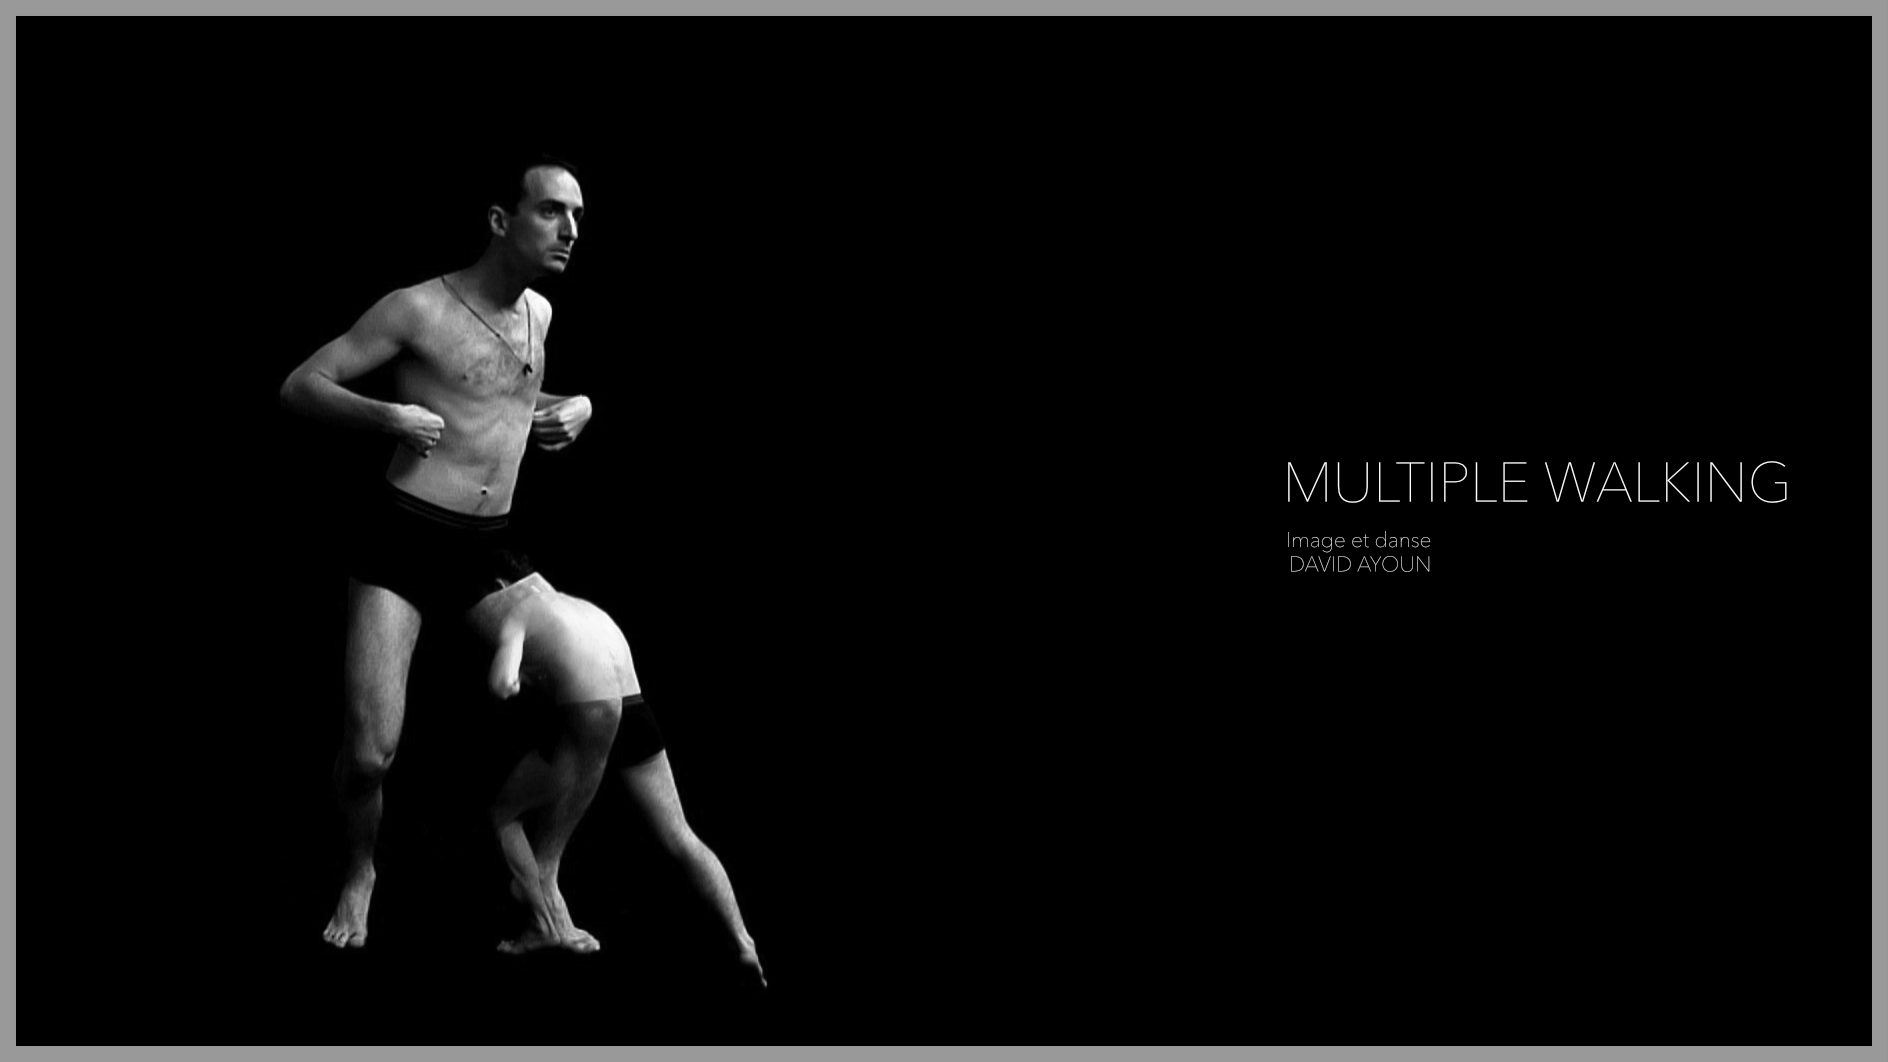 Multiple Walking (2010)